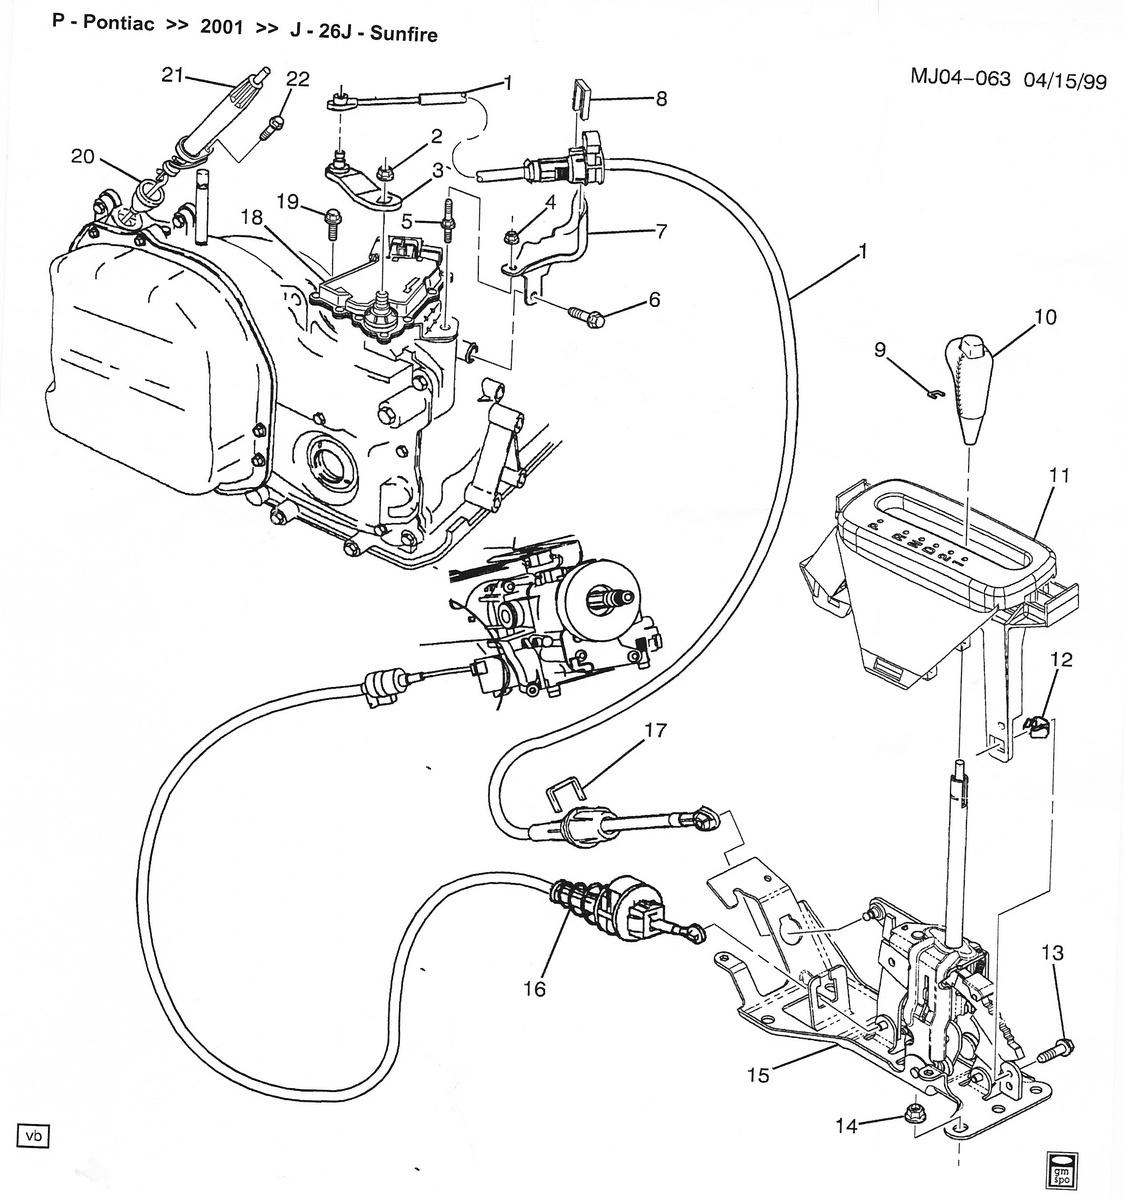 Discussion D608 ds527417 on bmw 325i vacuum diagram